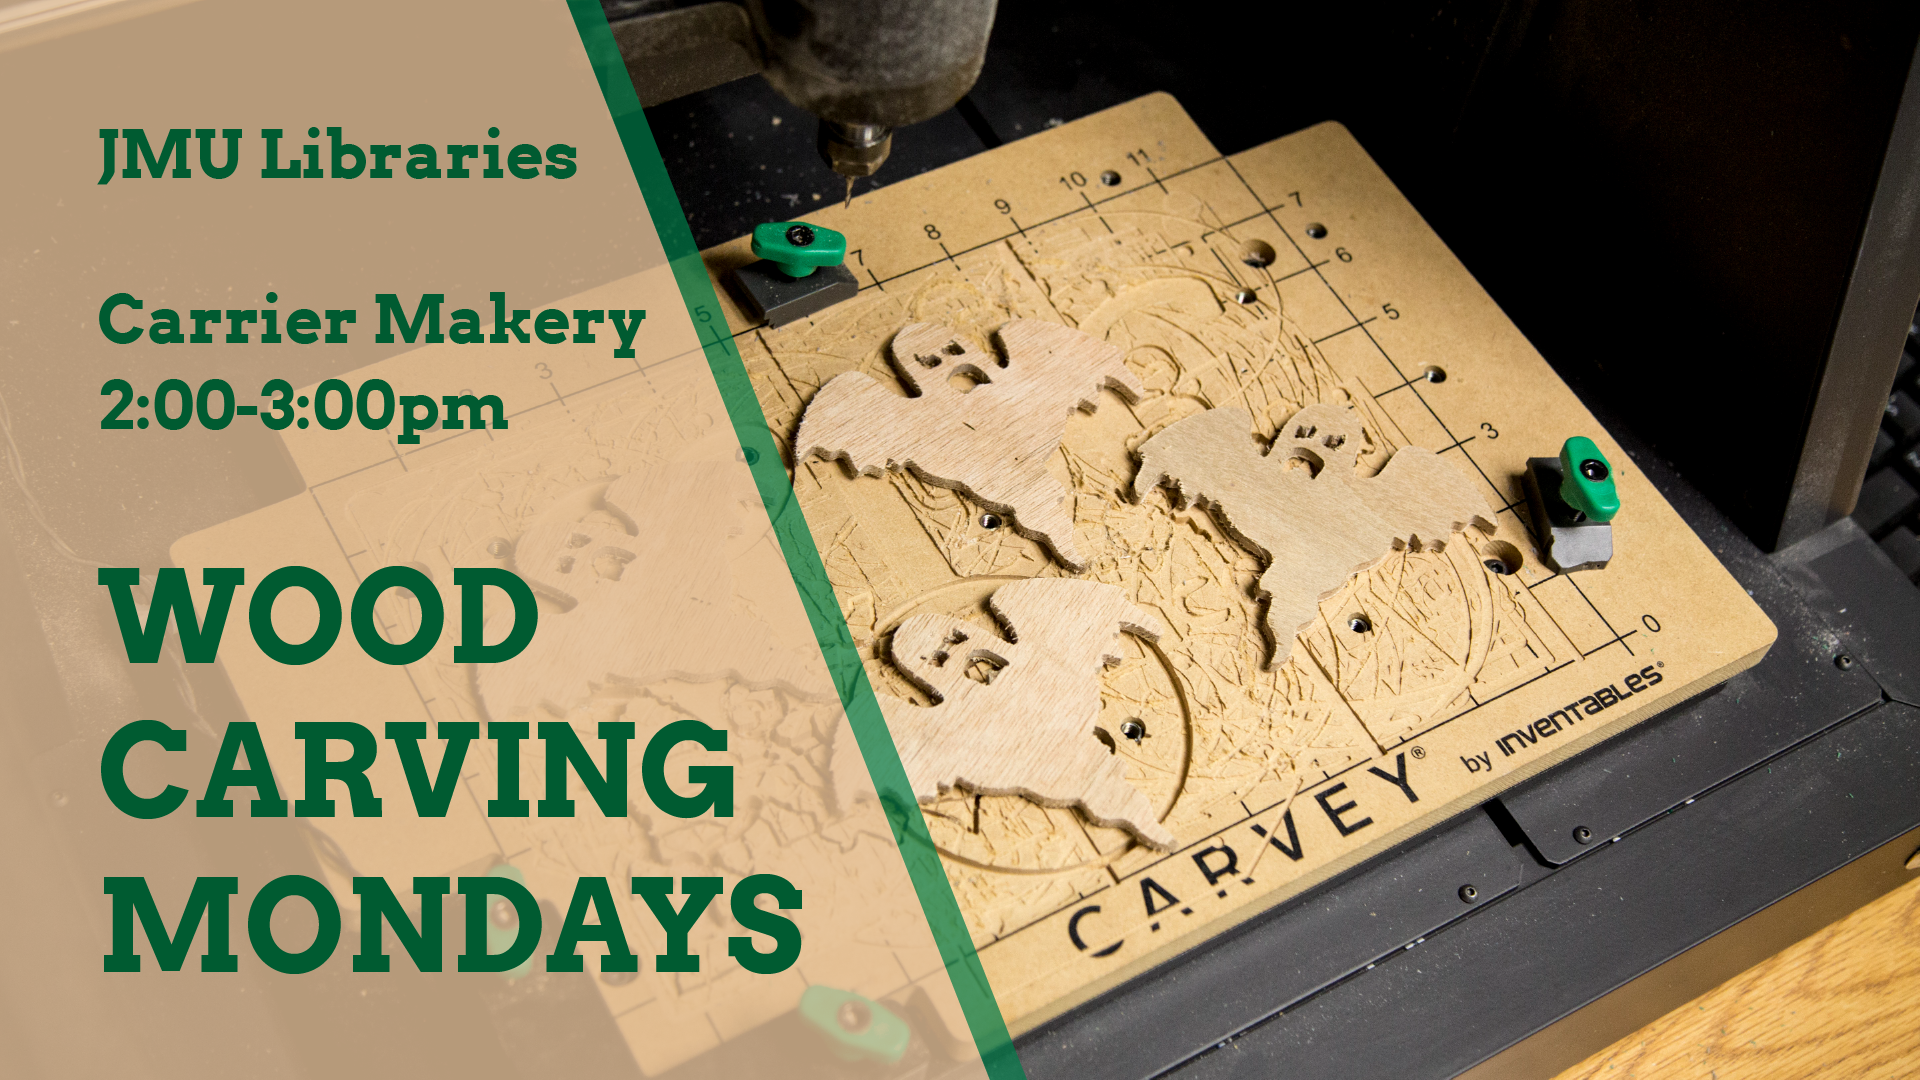 Wood Carving Mondays